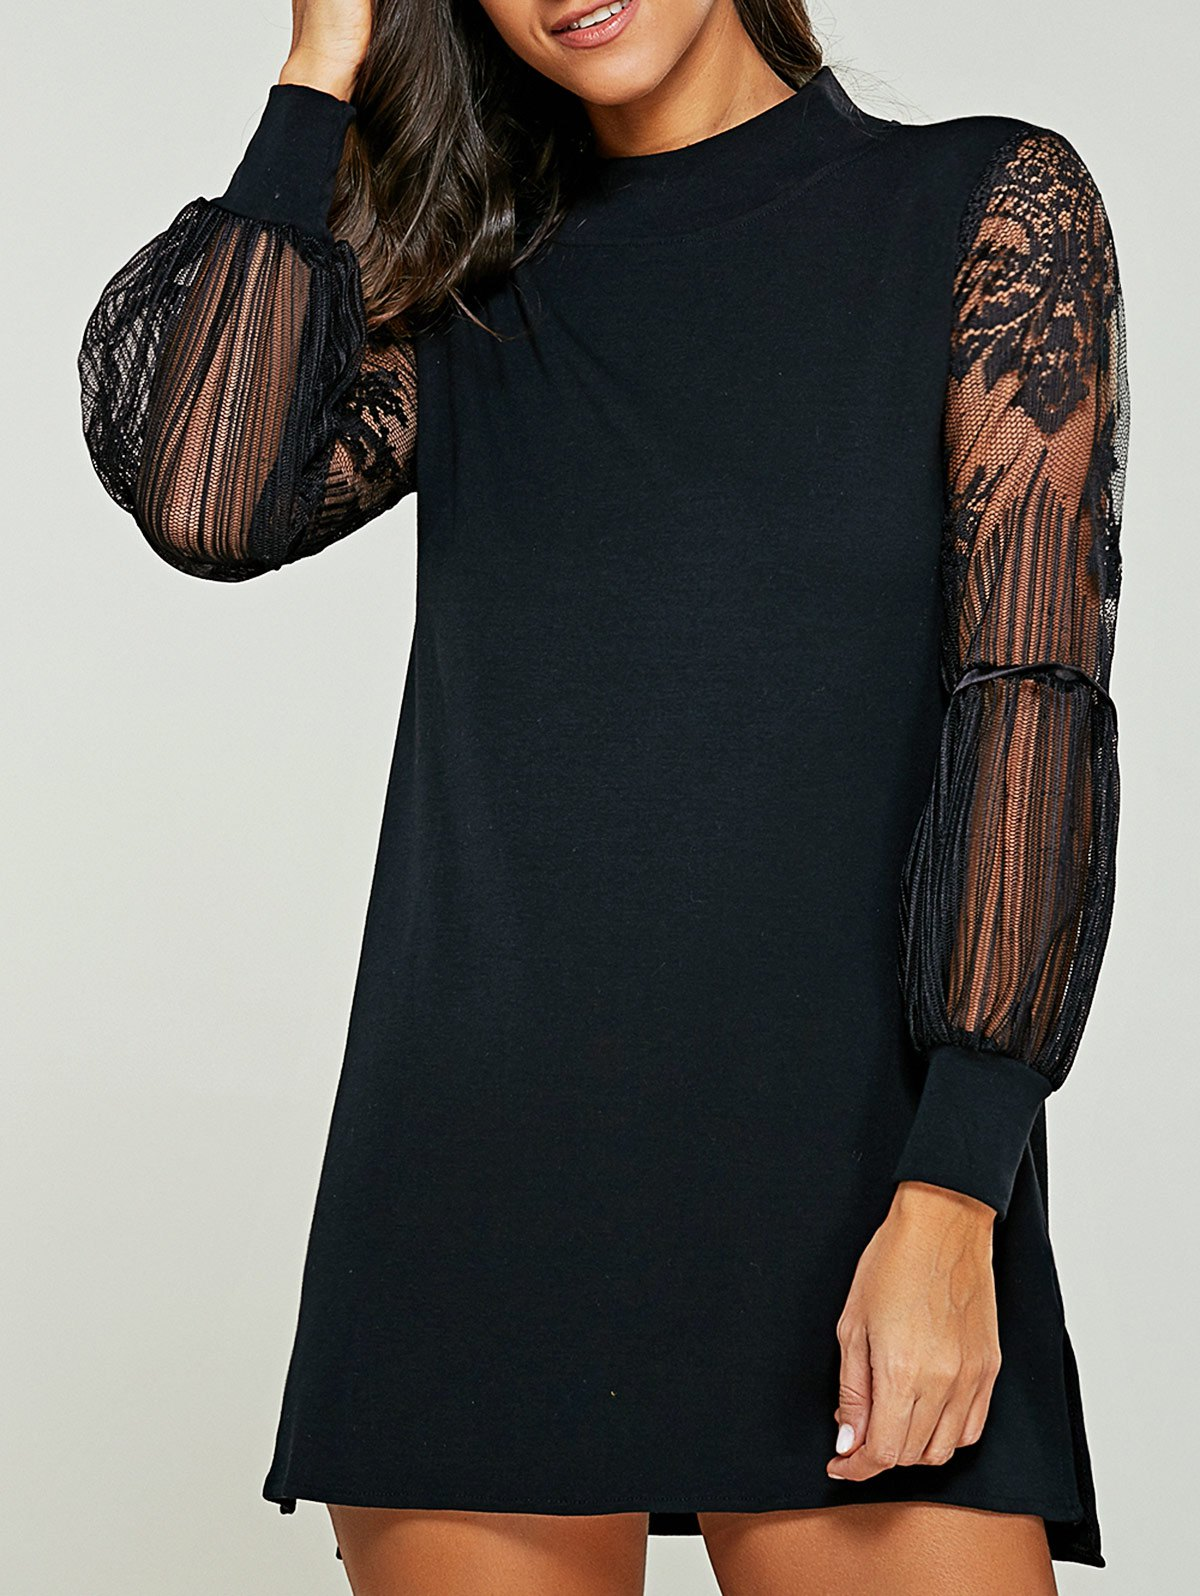 Lace Spliced Turtle Neck Sweater Dress - BLACK 2XL